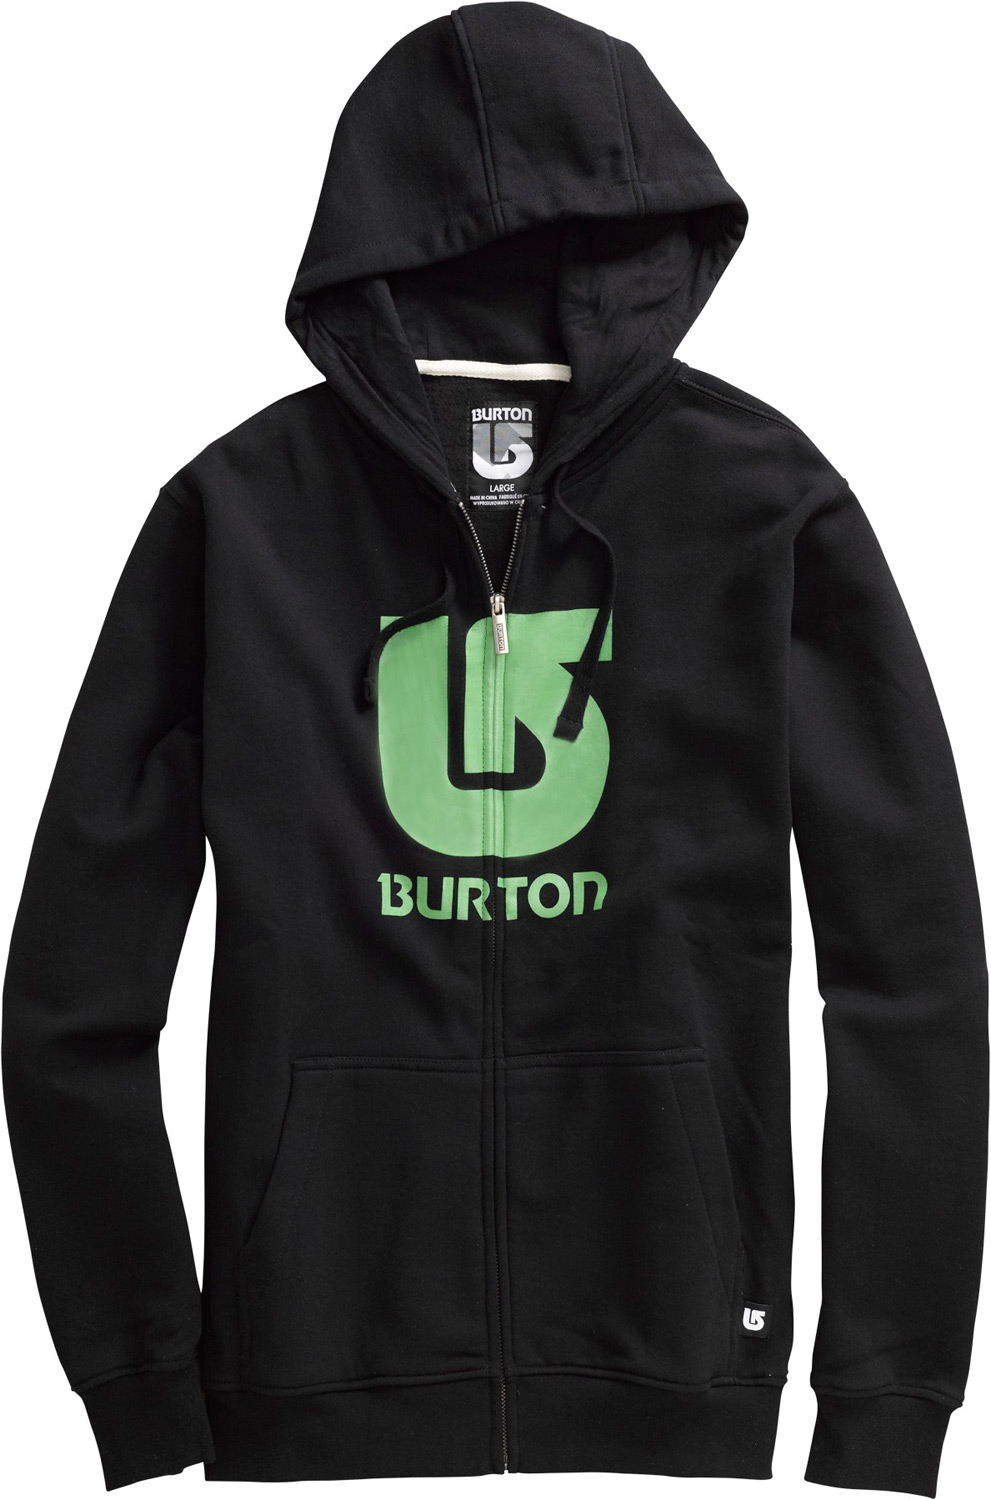 Snowboard Key Features of the Burton Logo Vertical Hoodie: 80% Cotton/20% Polyester, 300G Fleece Kangaroo Hand Warmer Pocket w/Interior Media Stash Signature Fit Hidden Side Seam Stash Pocket ProcessLogo on Chest S-XL - $40.95